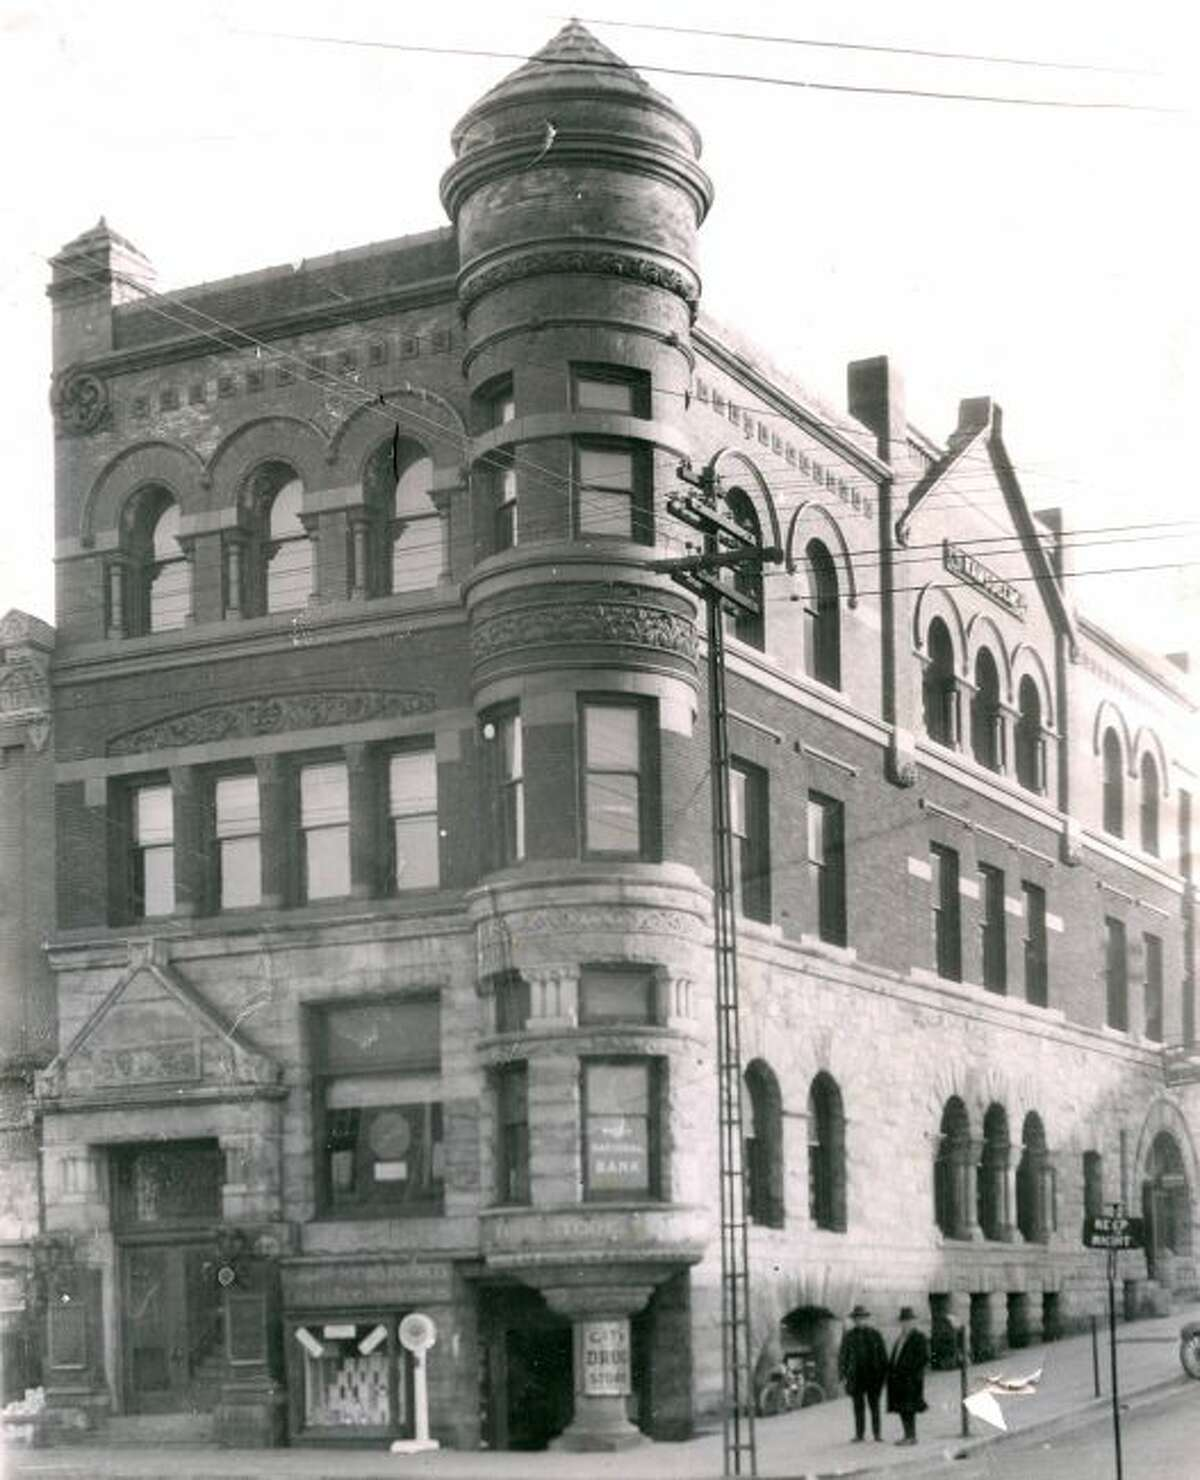 The Ramsdell Building at the corner of Maple and River streets is shown in this 1905 photograph. City Drug Store was located in the lower level and the First National Bank on the first floor.